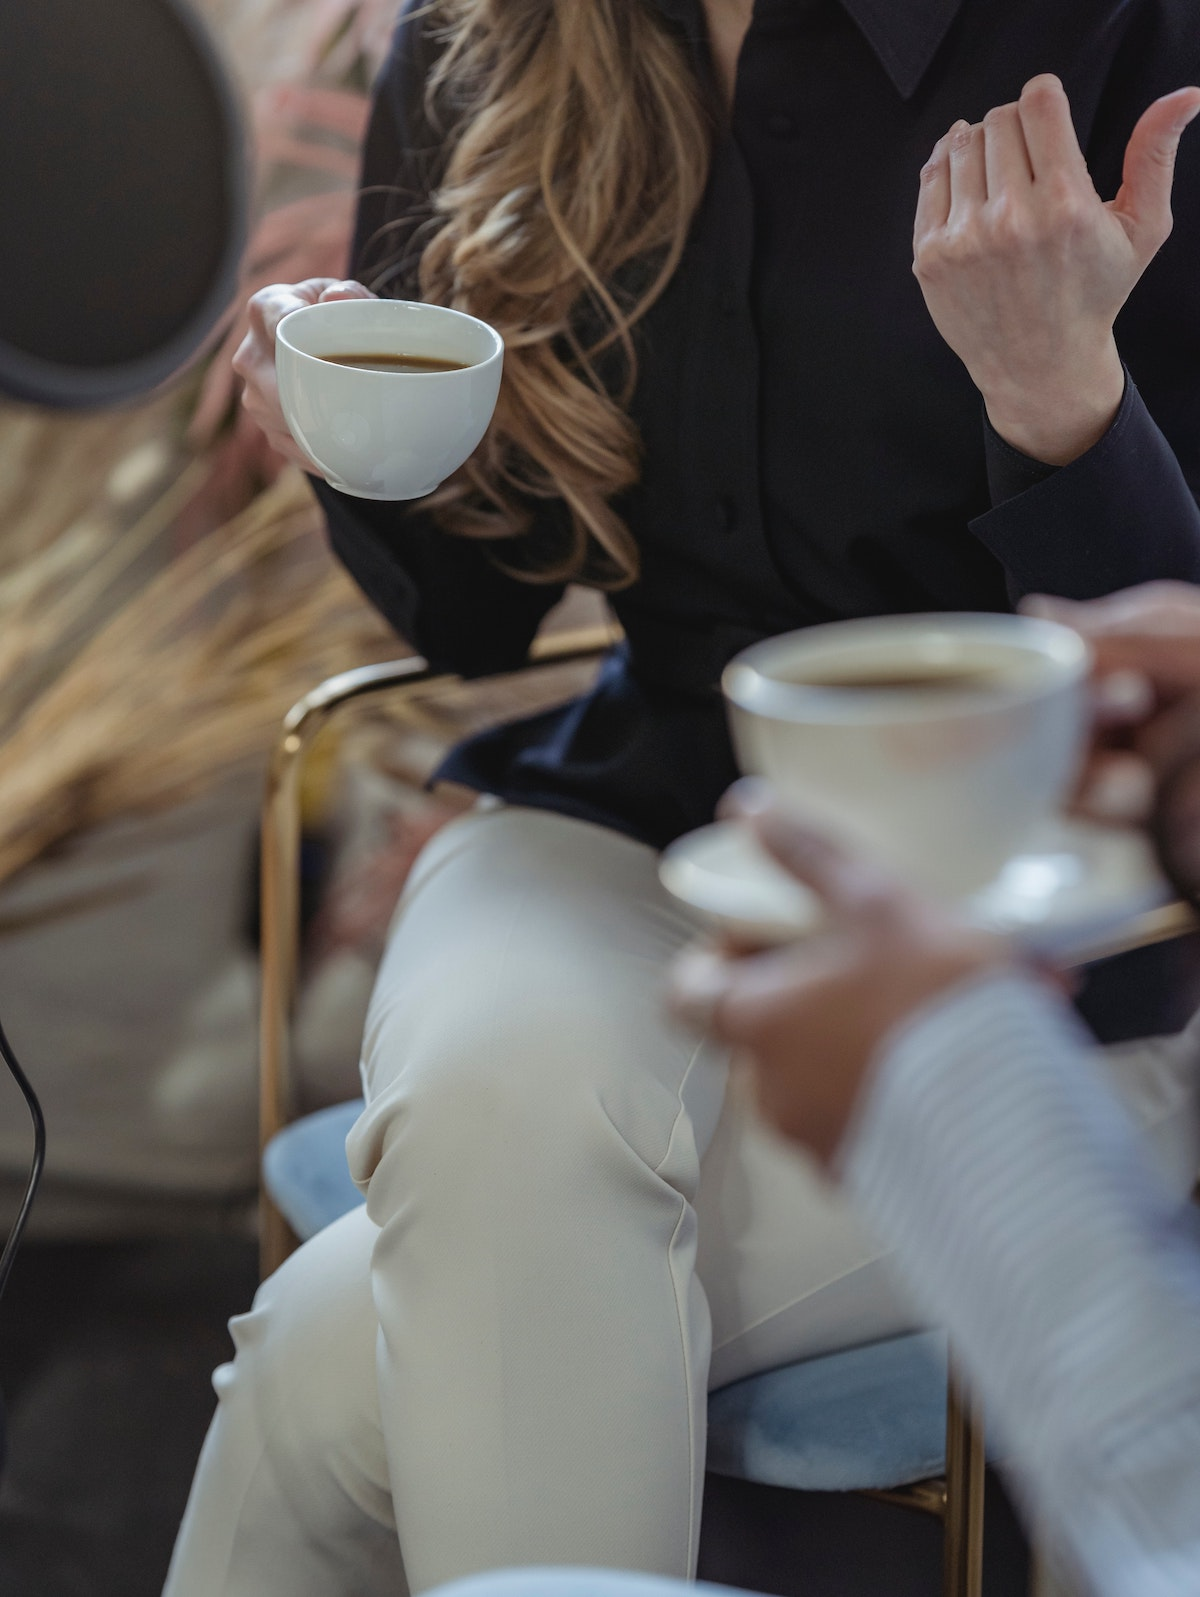 How To Win Over Arrogant Interactions Through Daily Girl Boss Life: